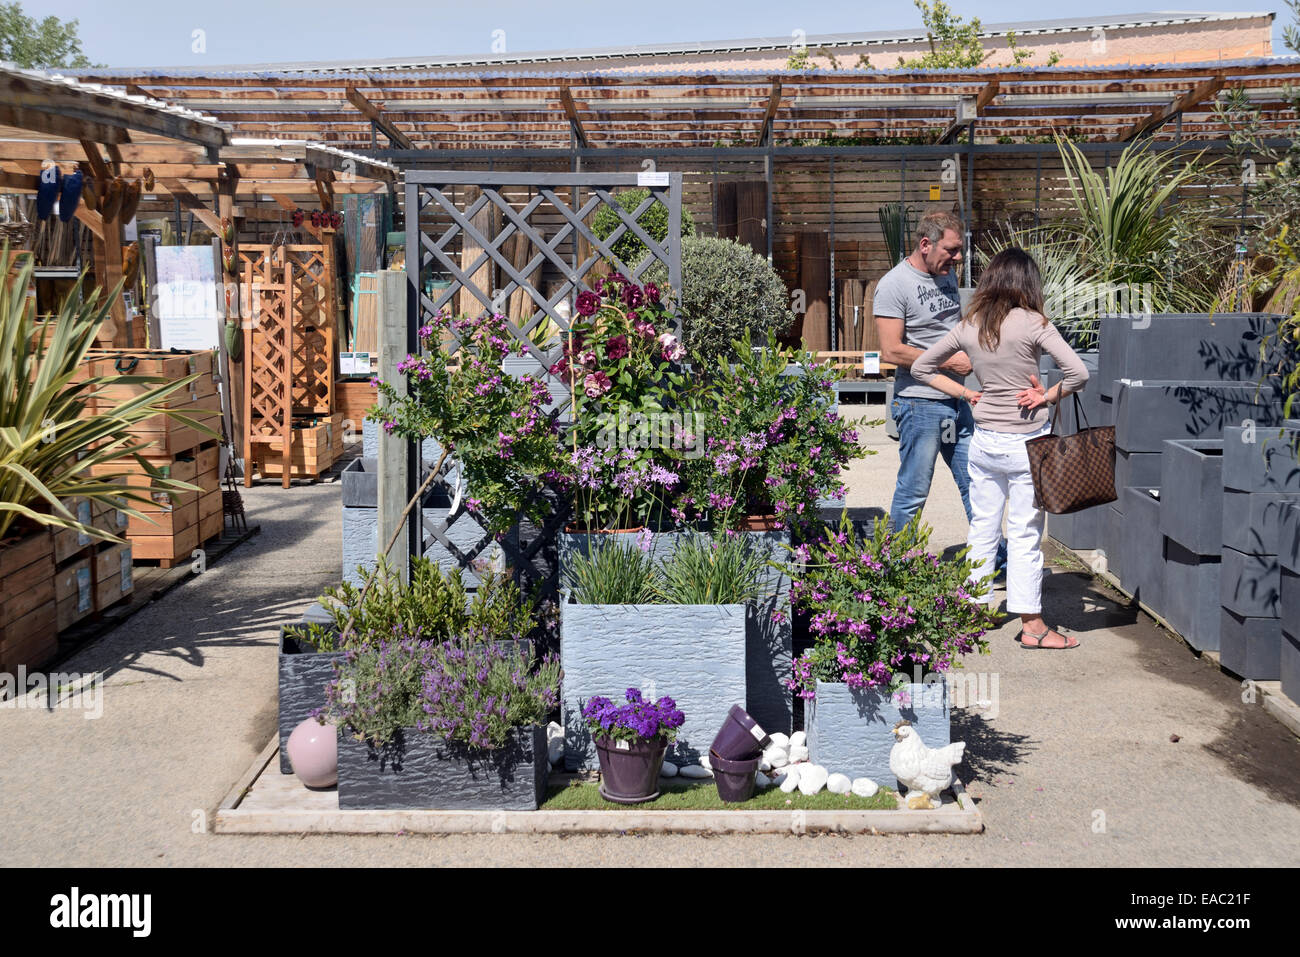 Couple Shopping in Garden Center with Display of Stylish Gray or Grey Planters or Plant Pots and Lavender Plants - Stock Image